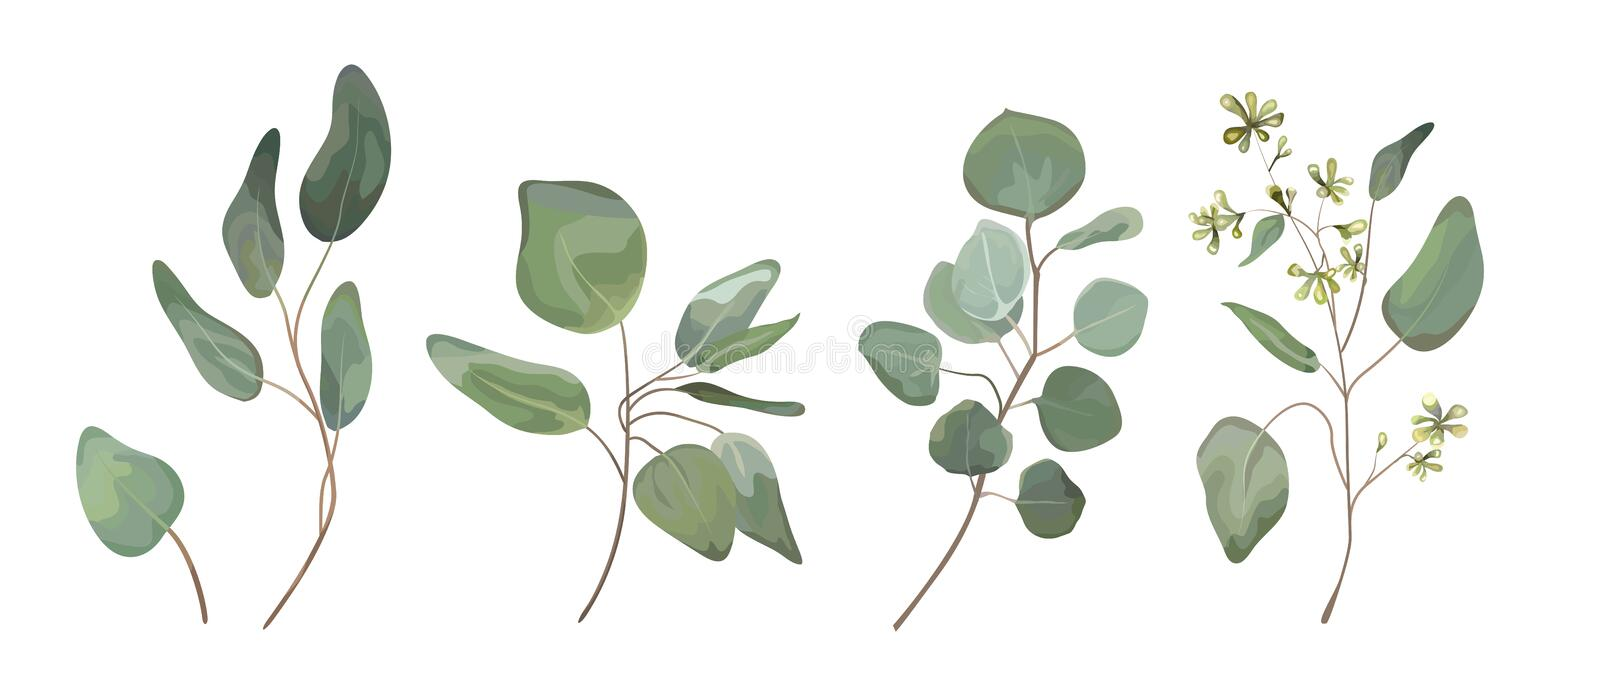 Eucalyptus seeded silver dollar tree leaves designer art, foliage, natural branches elements in watercolor rustic style set vector illustration